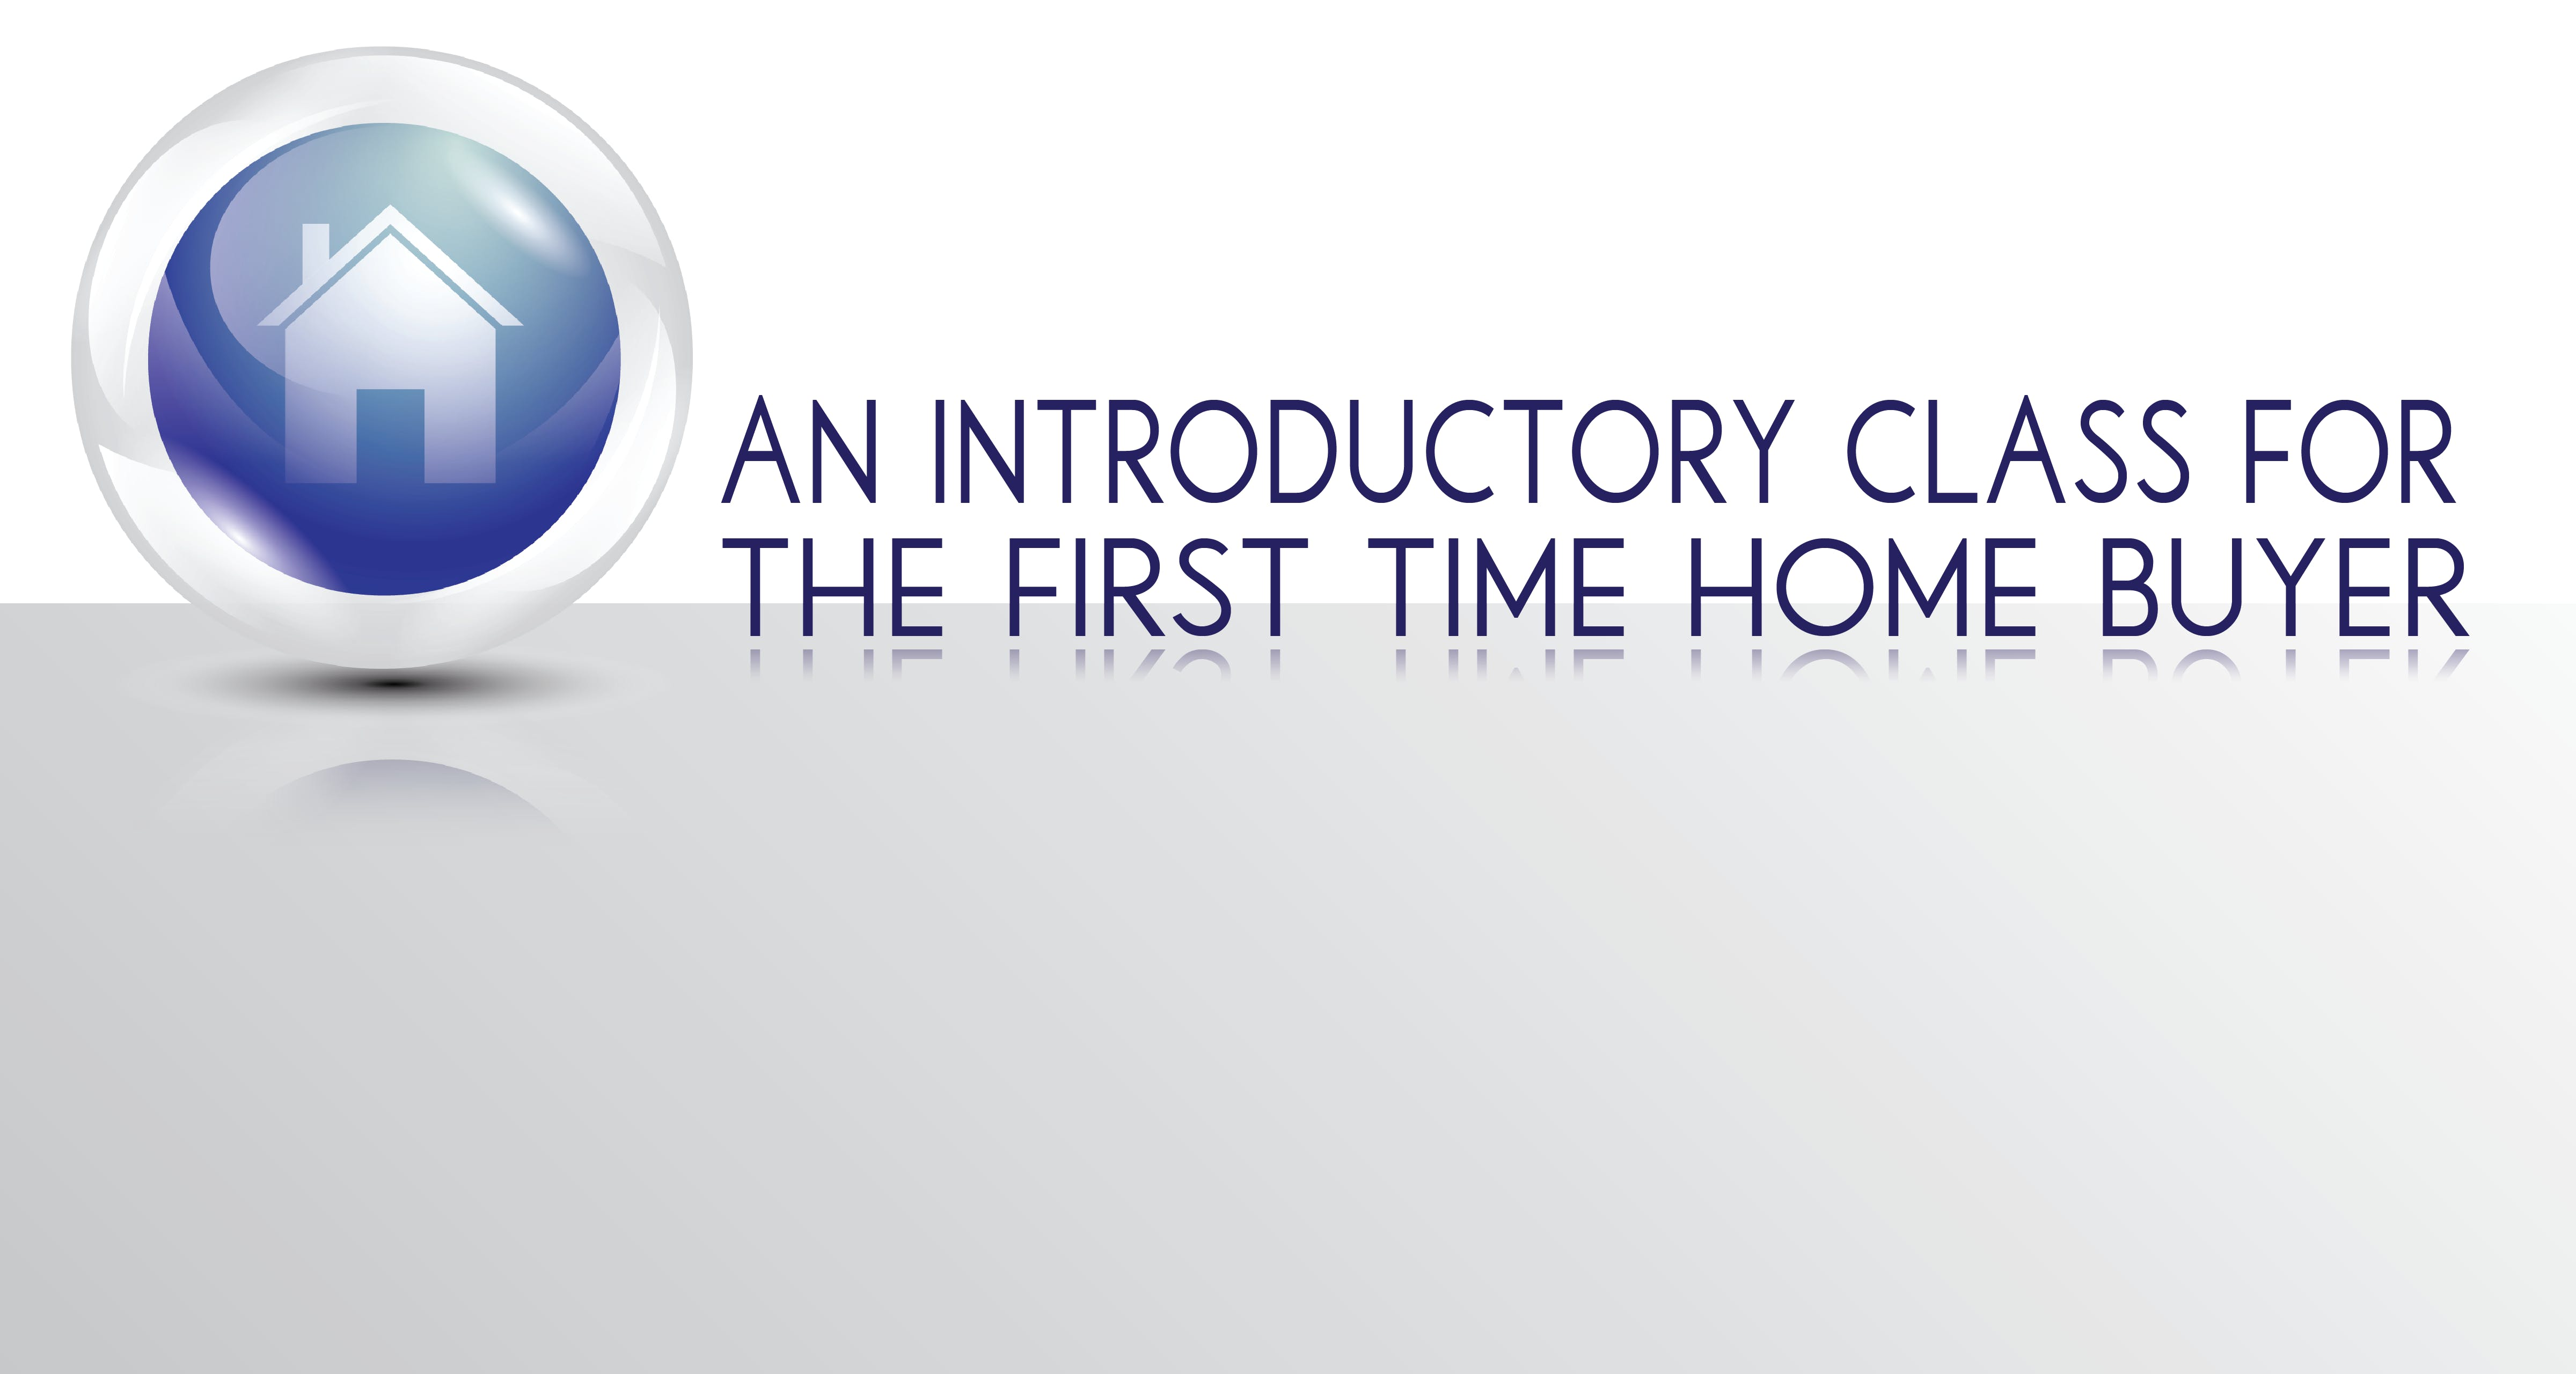 An Introductory Class for the First Time Home